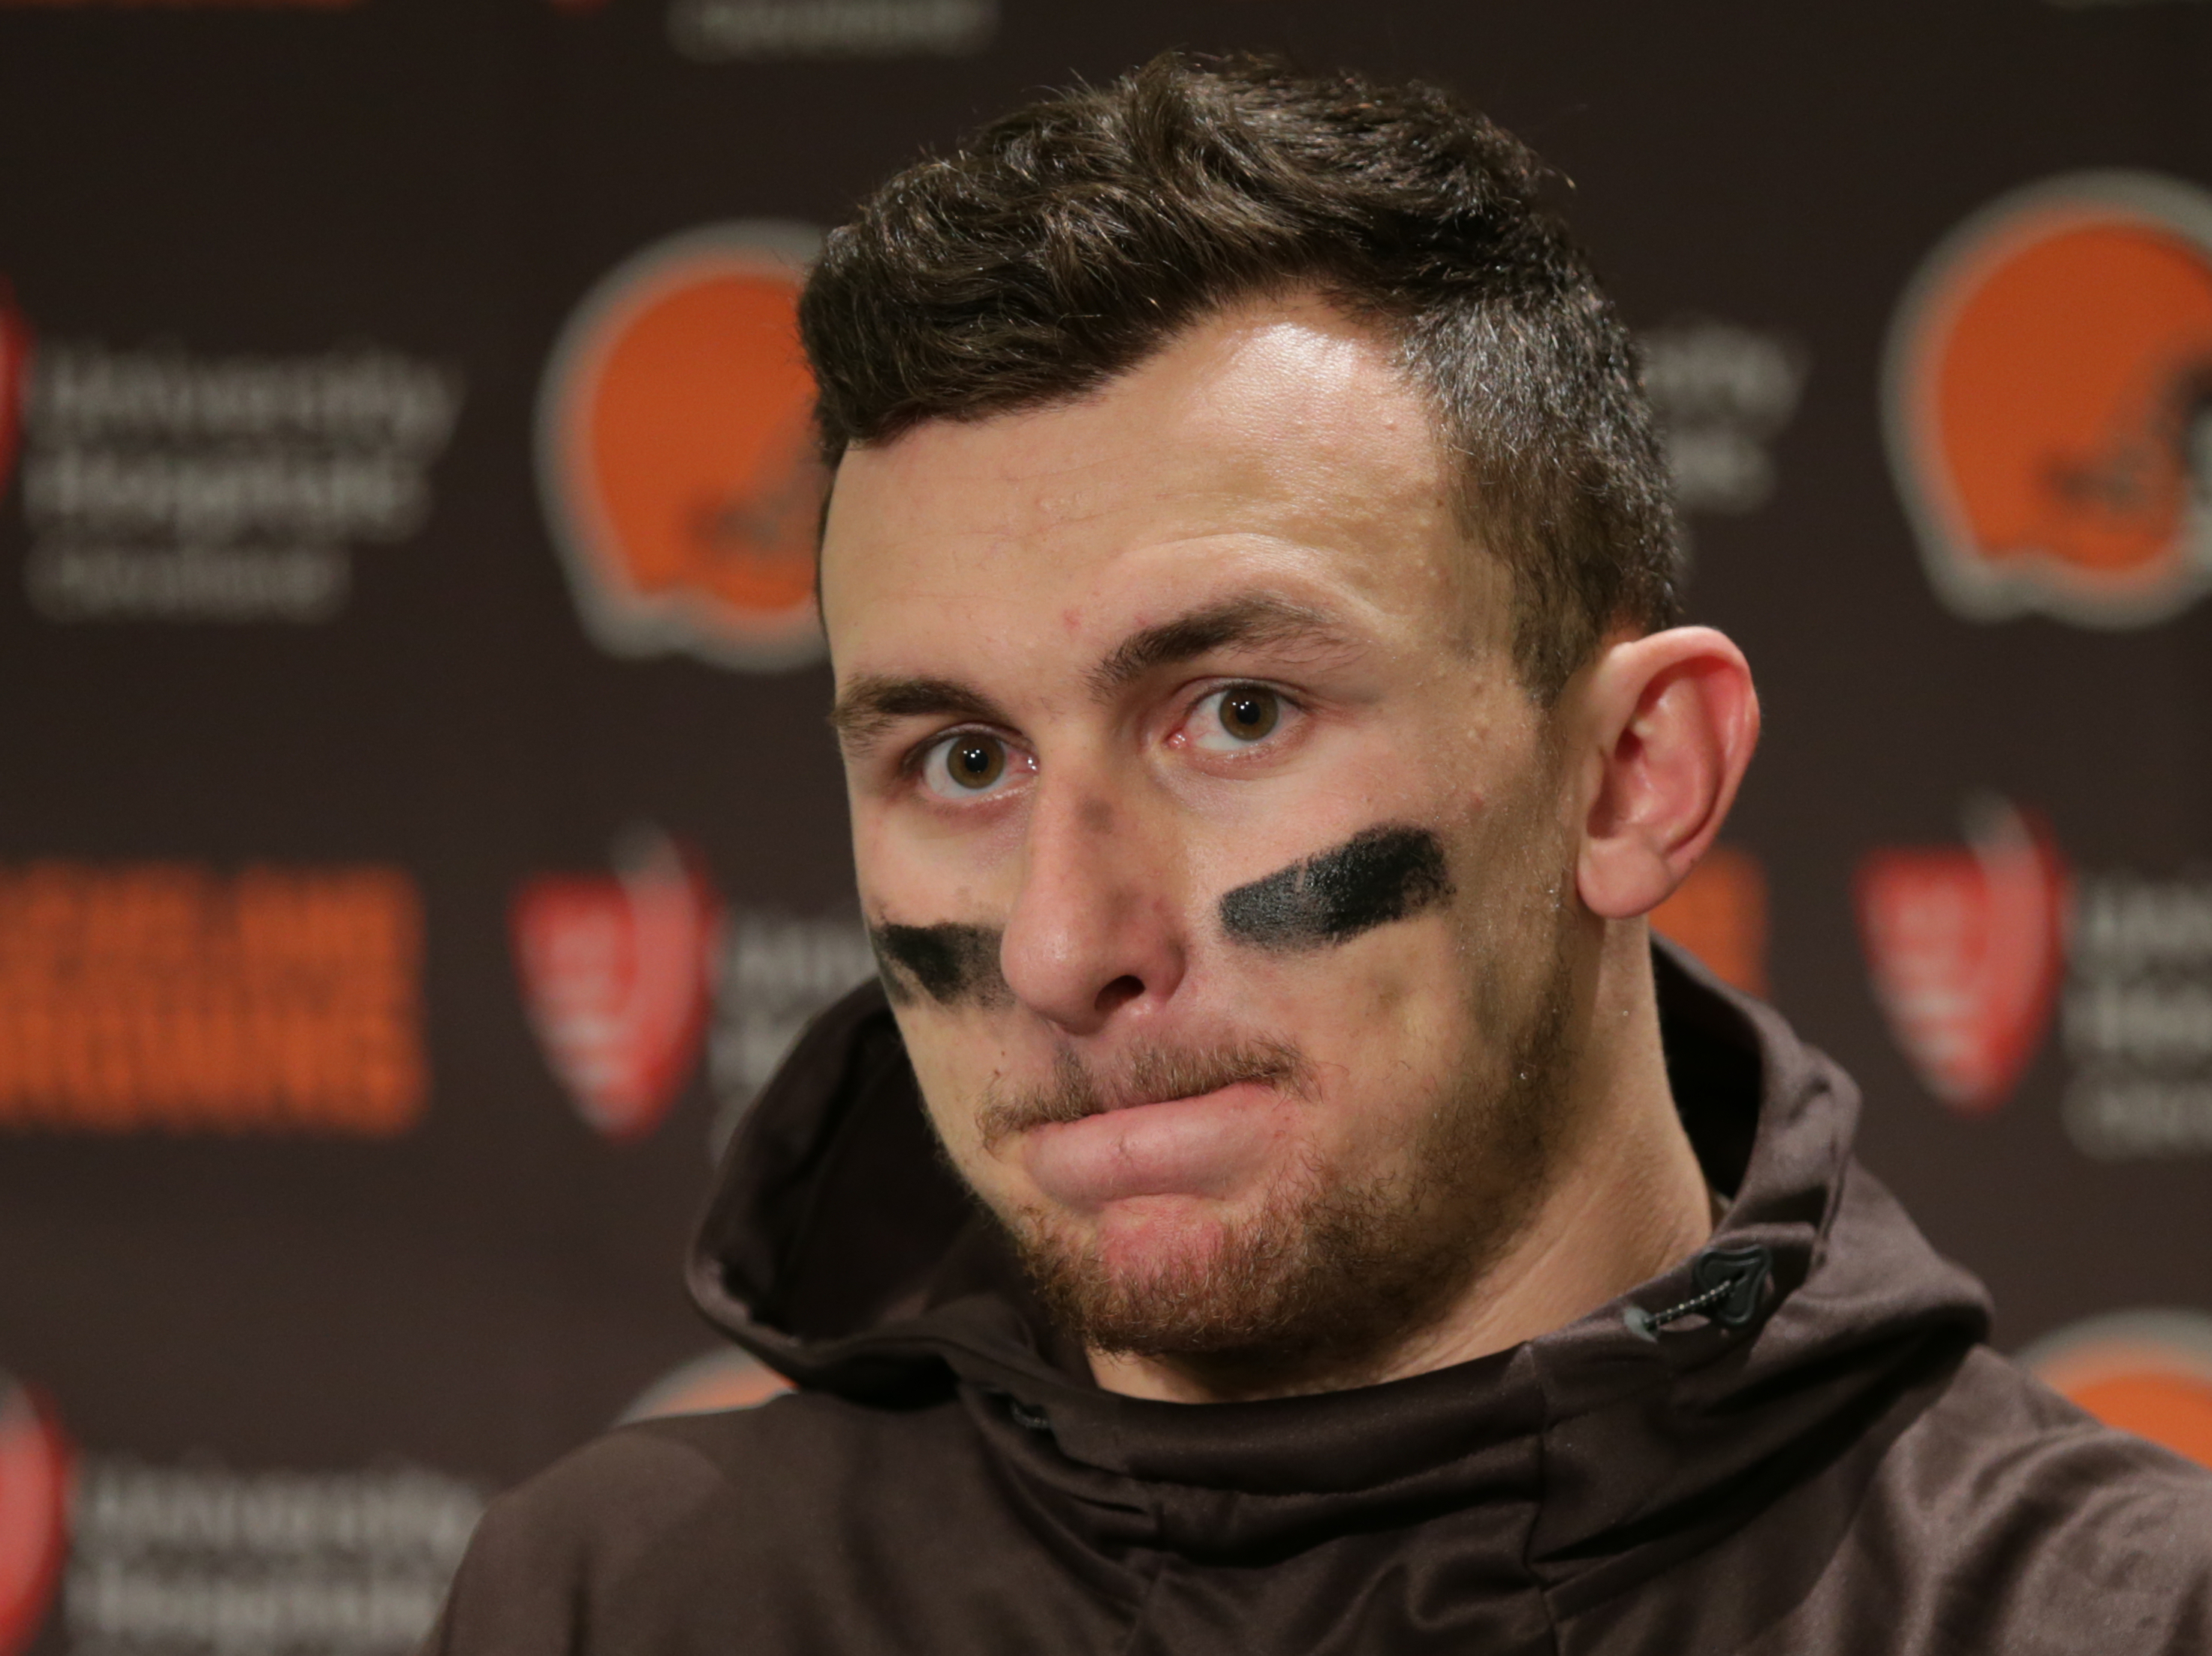 FILE - In this Dec. 20, 2015, file photo, Cleveland Browns quarterback Johnny Manziel speaks with media members following the team's 30-13 loss to the Seattle Seahawks in an NFL football game, in Seattle. A Dallas judge has set a $1,500 bond for former Cl